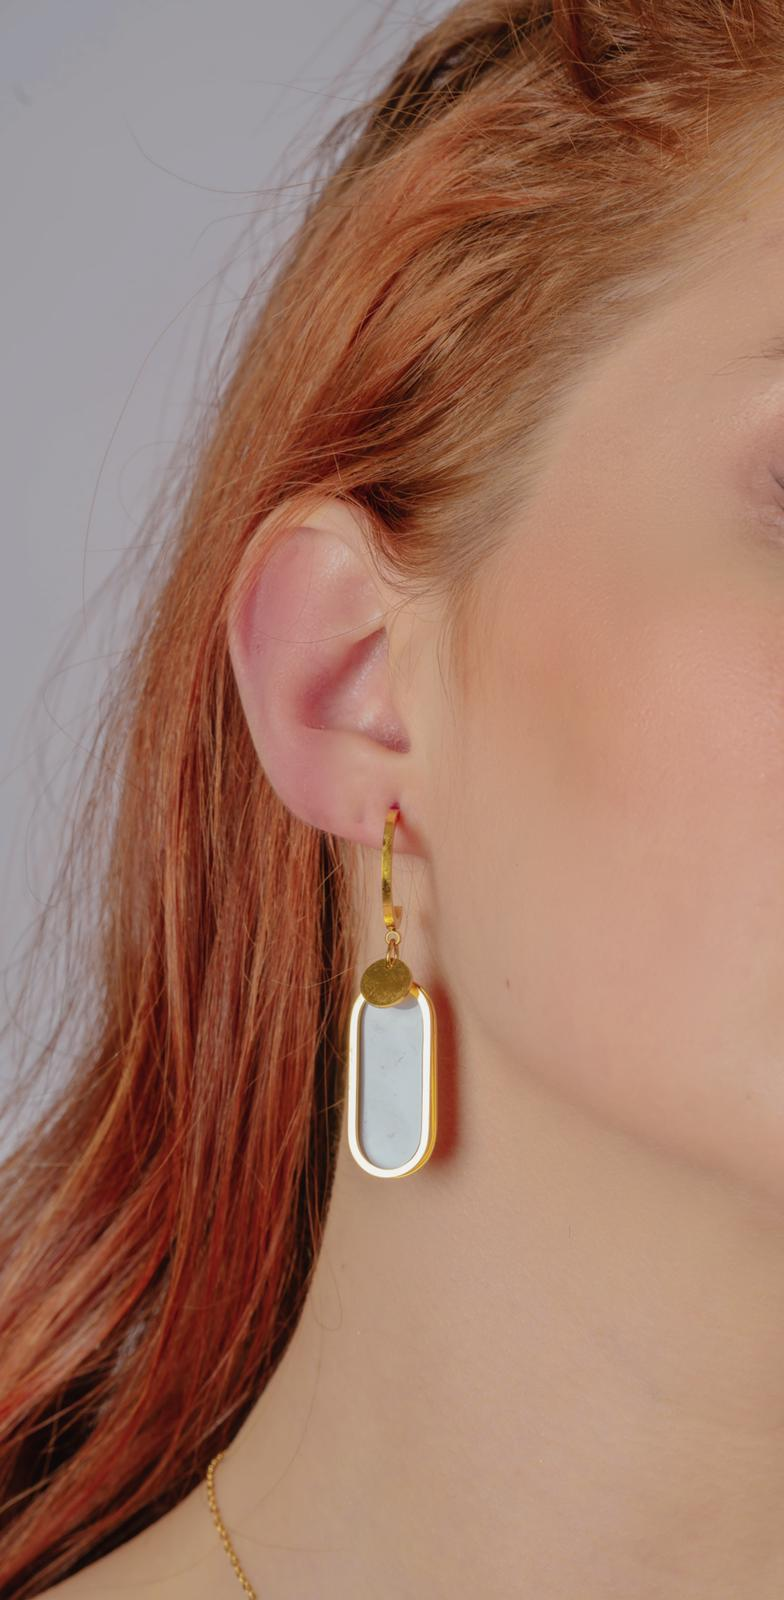 Youthful designs that have an original look but can still be classy and fashionable : Freyatreasures